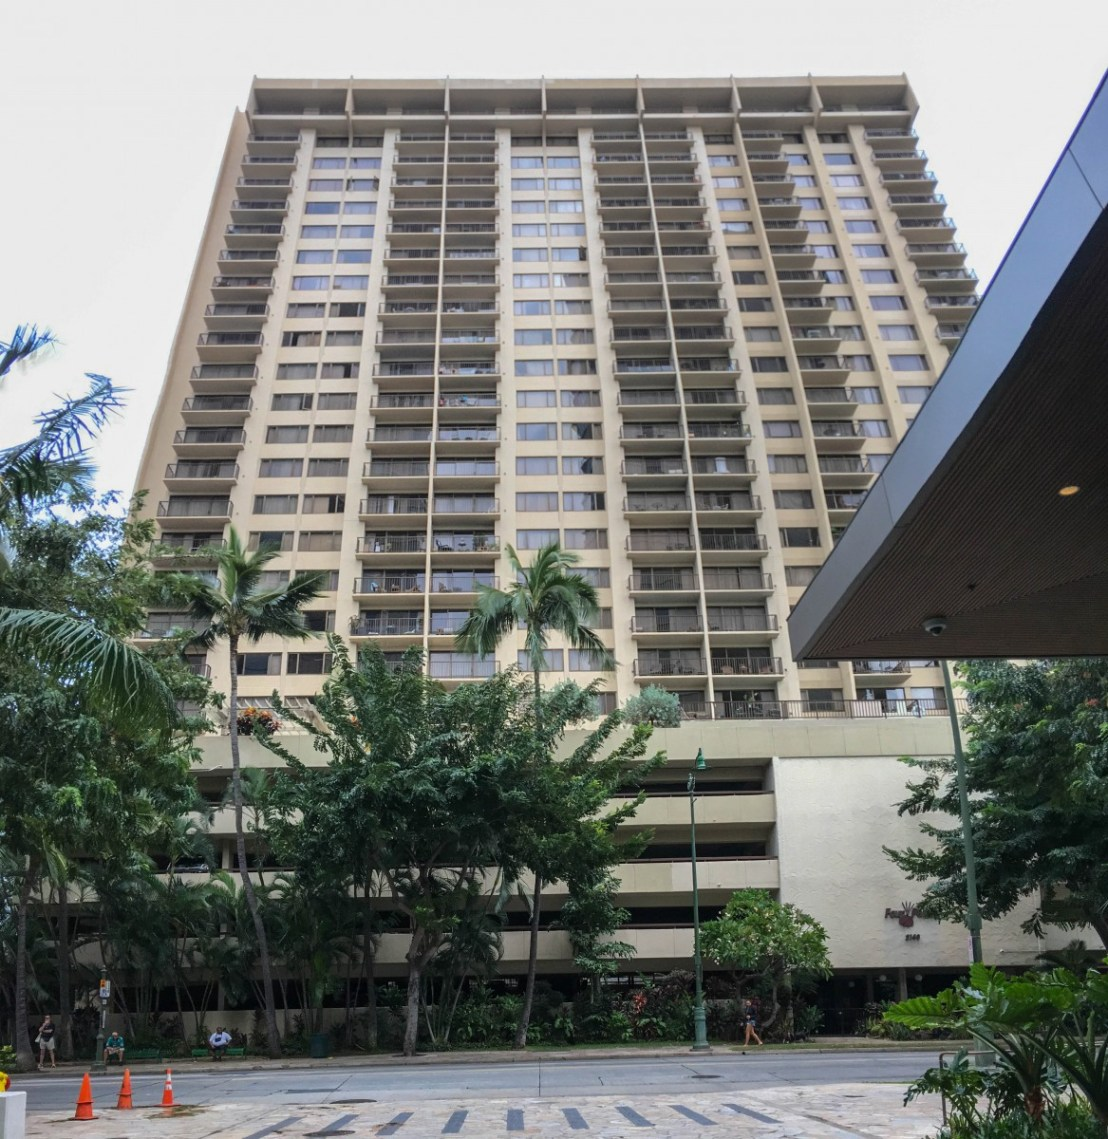 Four Paddle Condominium Building As Seen From Ritz-Carlton Residences